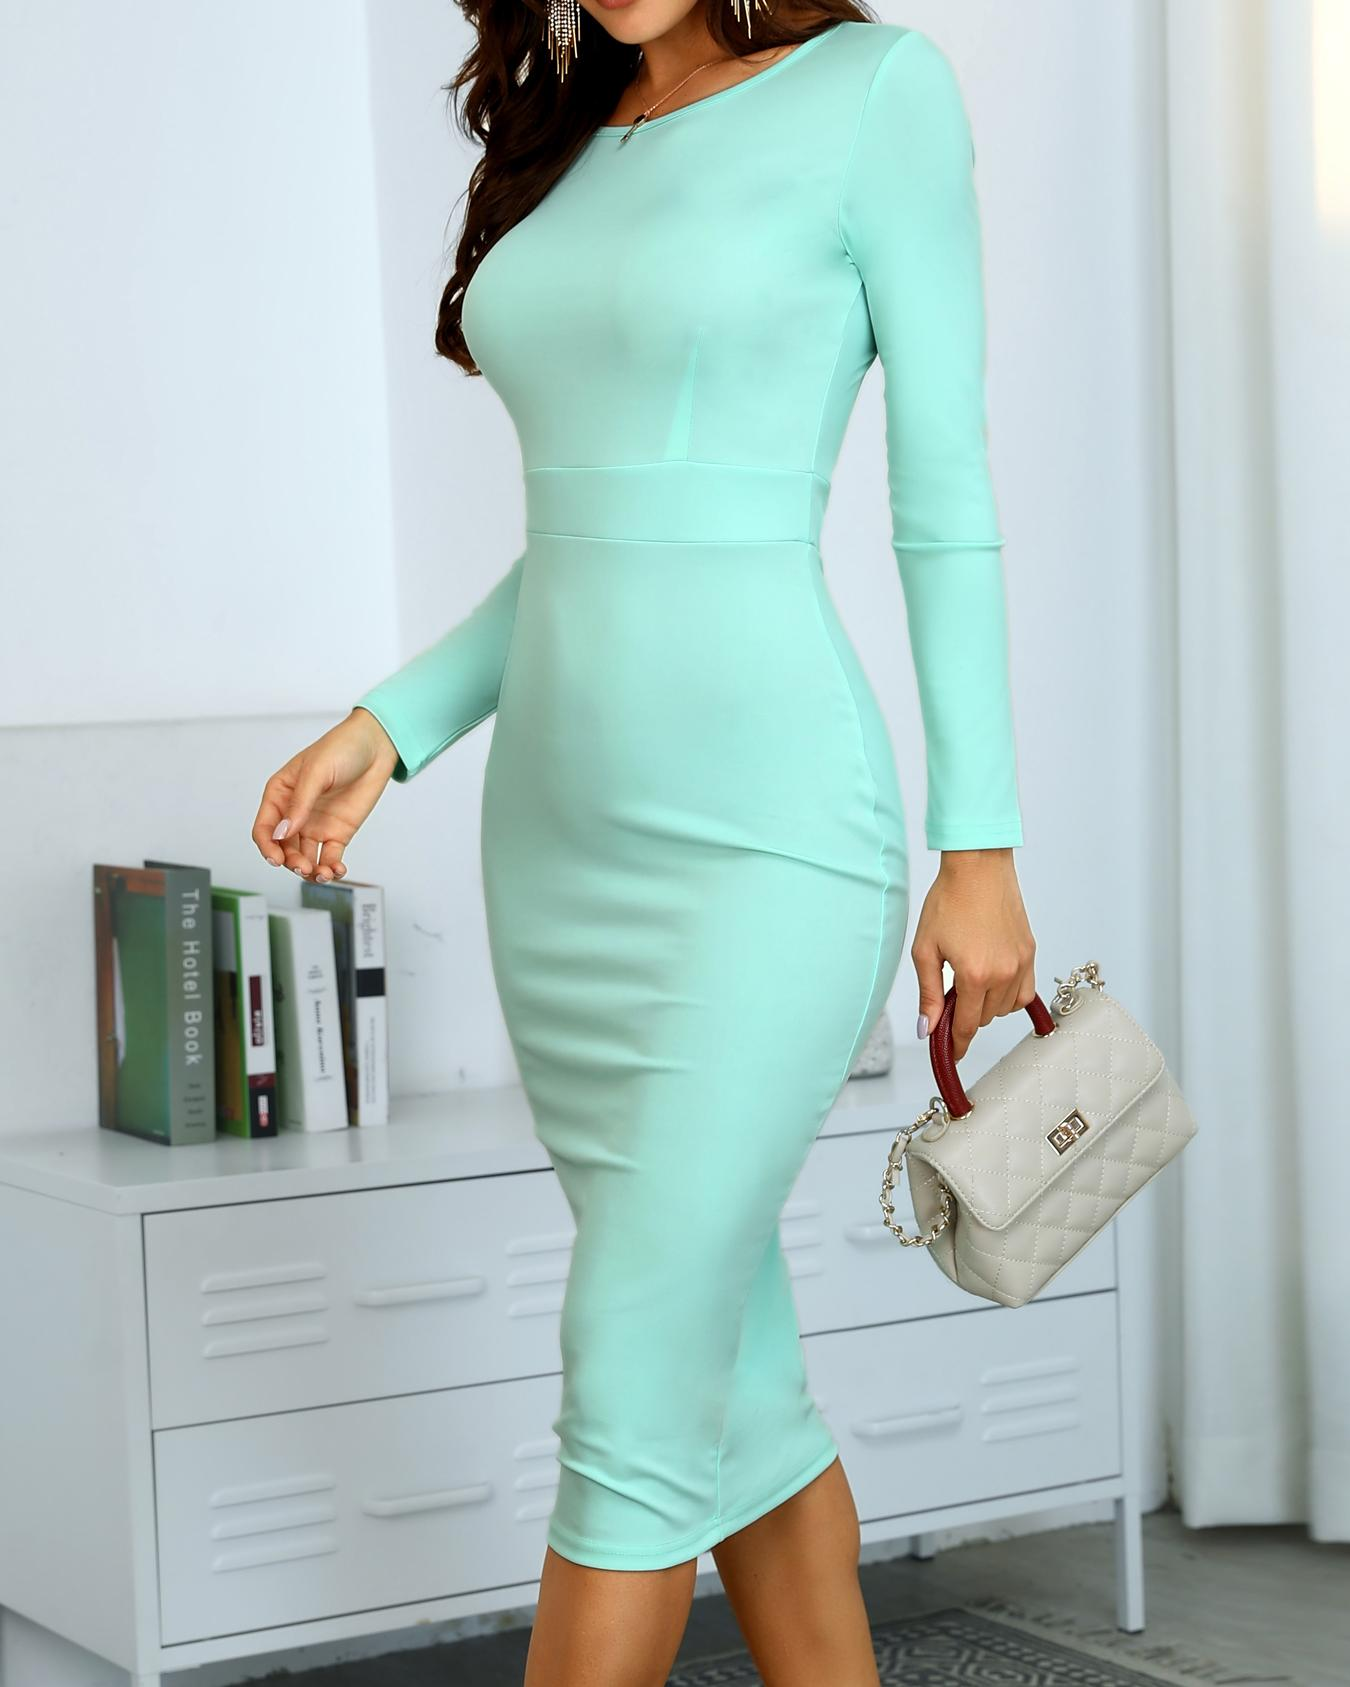 chicme / High Waist Long Sleeve Midi Dress